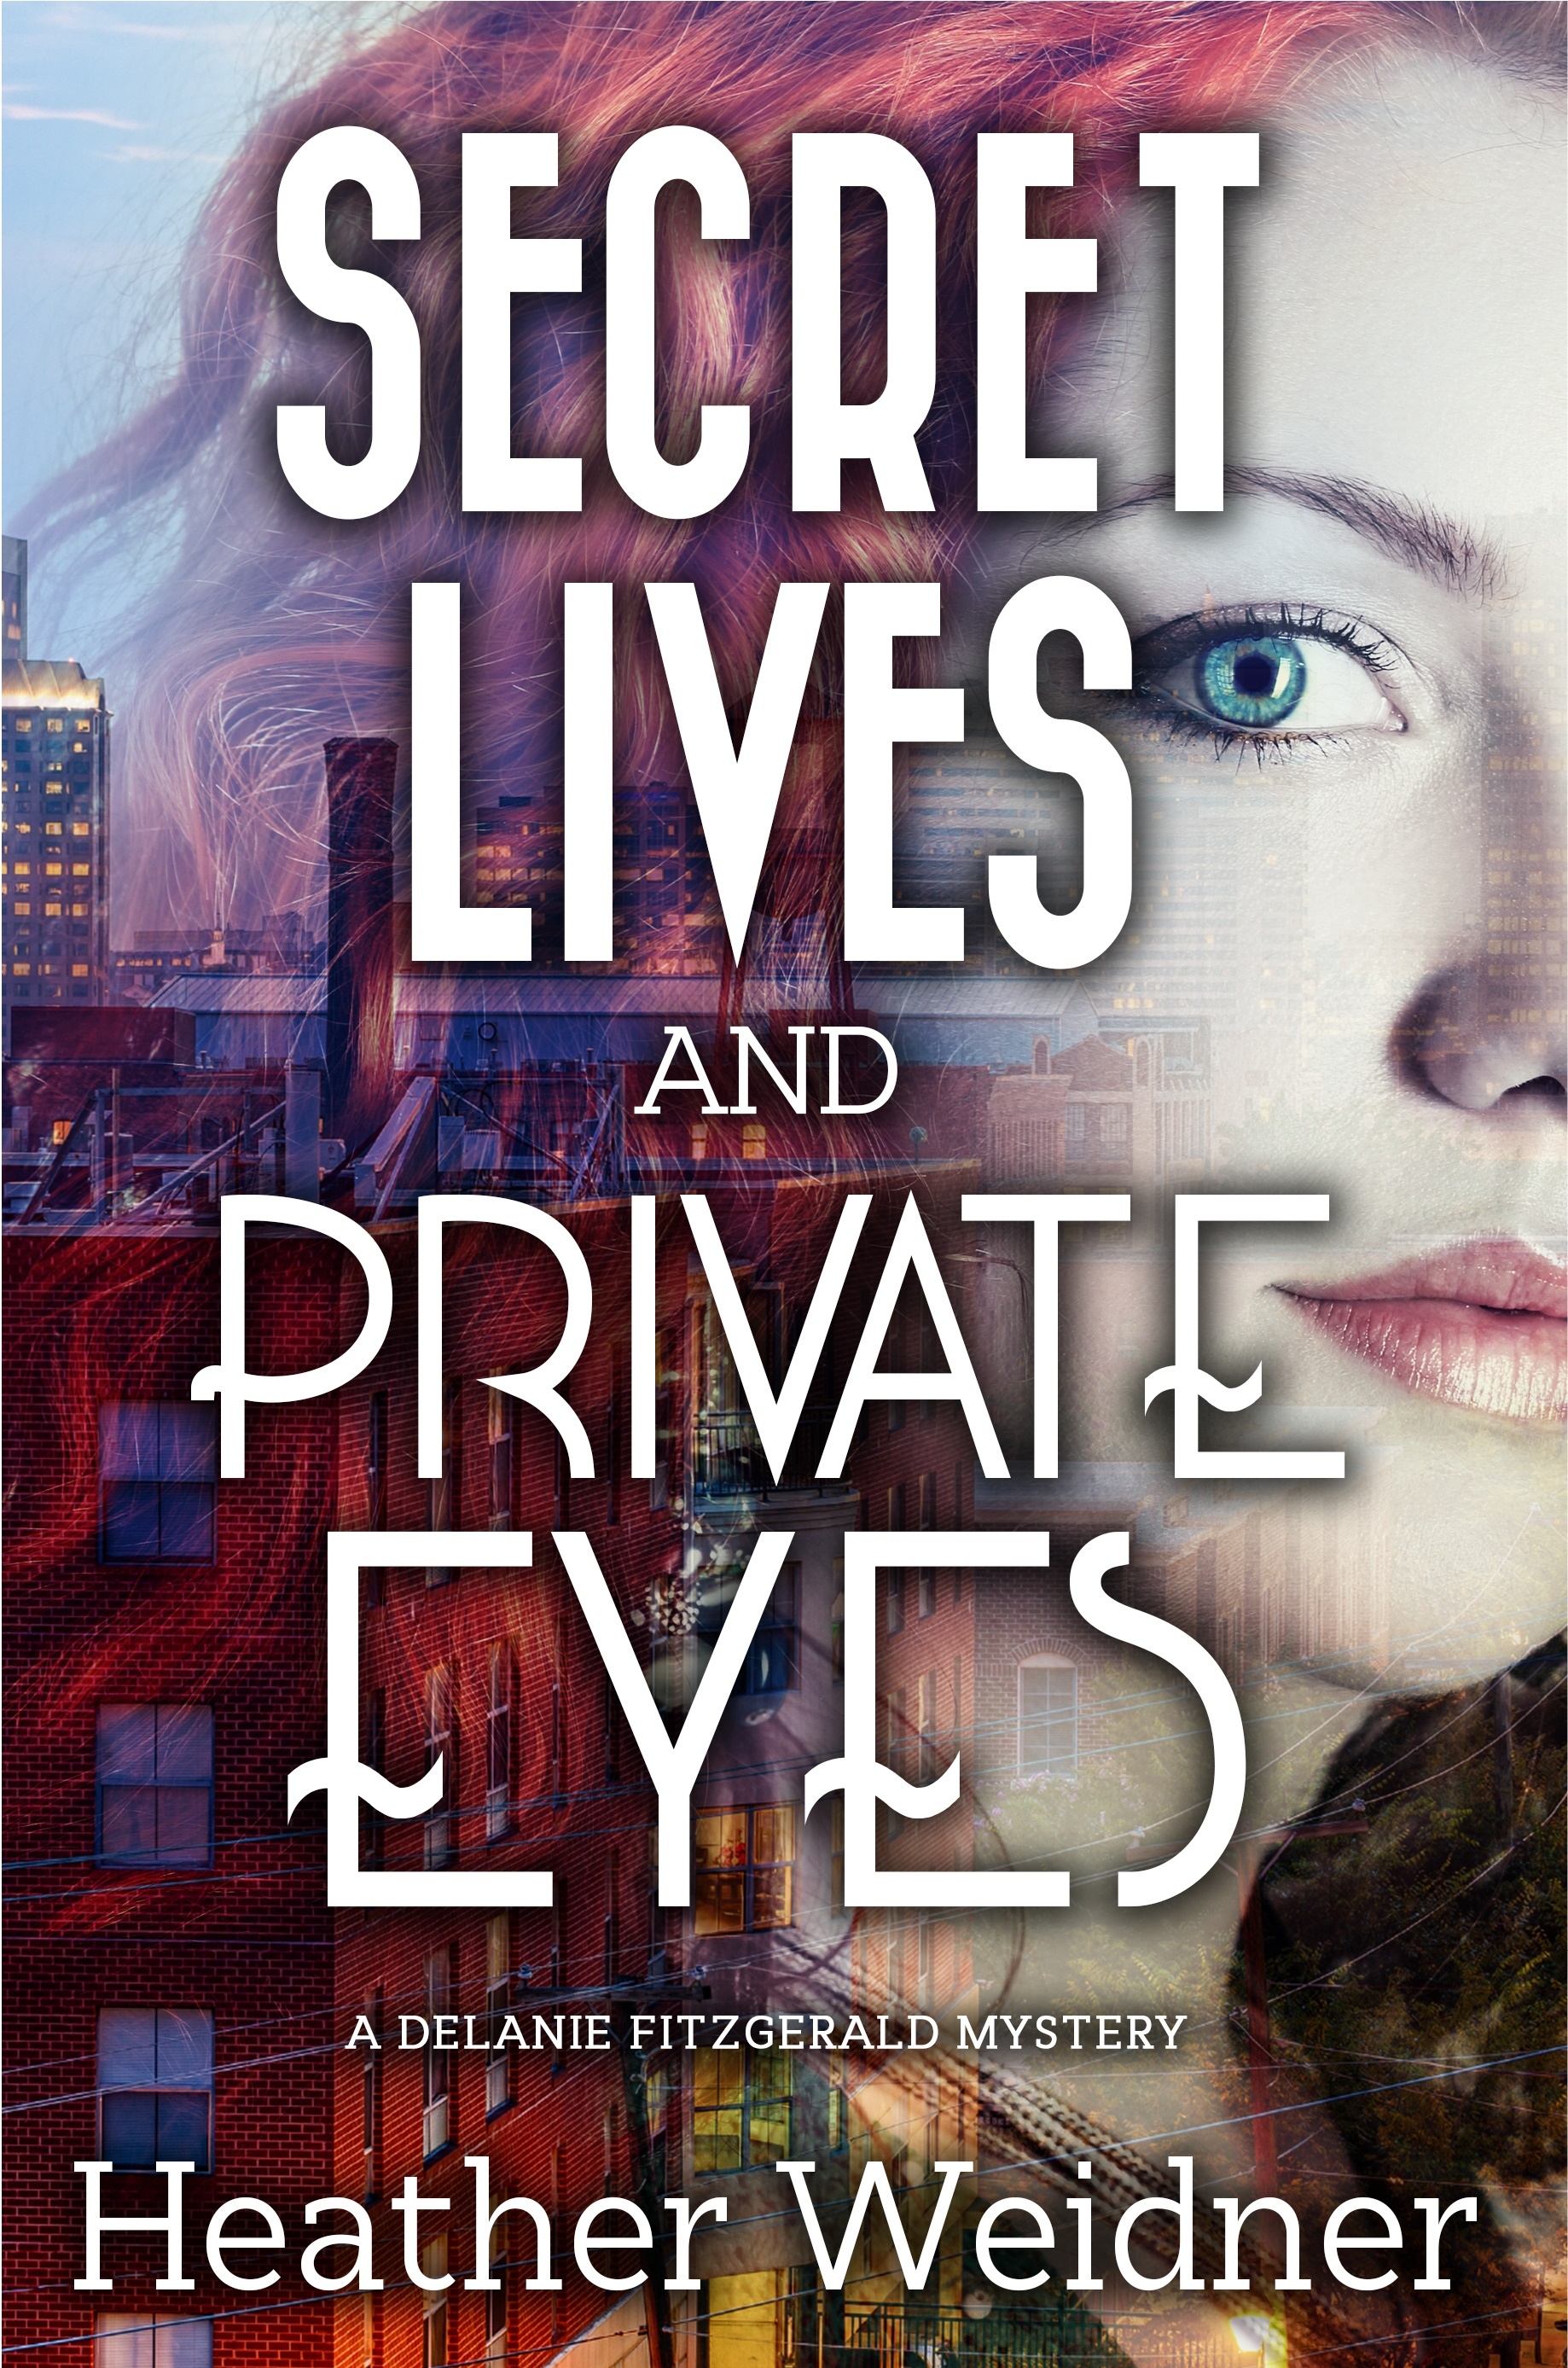 secret lives private eyes cover.jpg